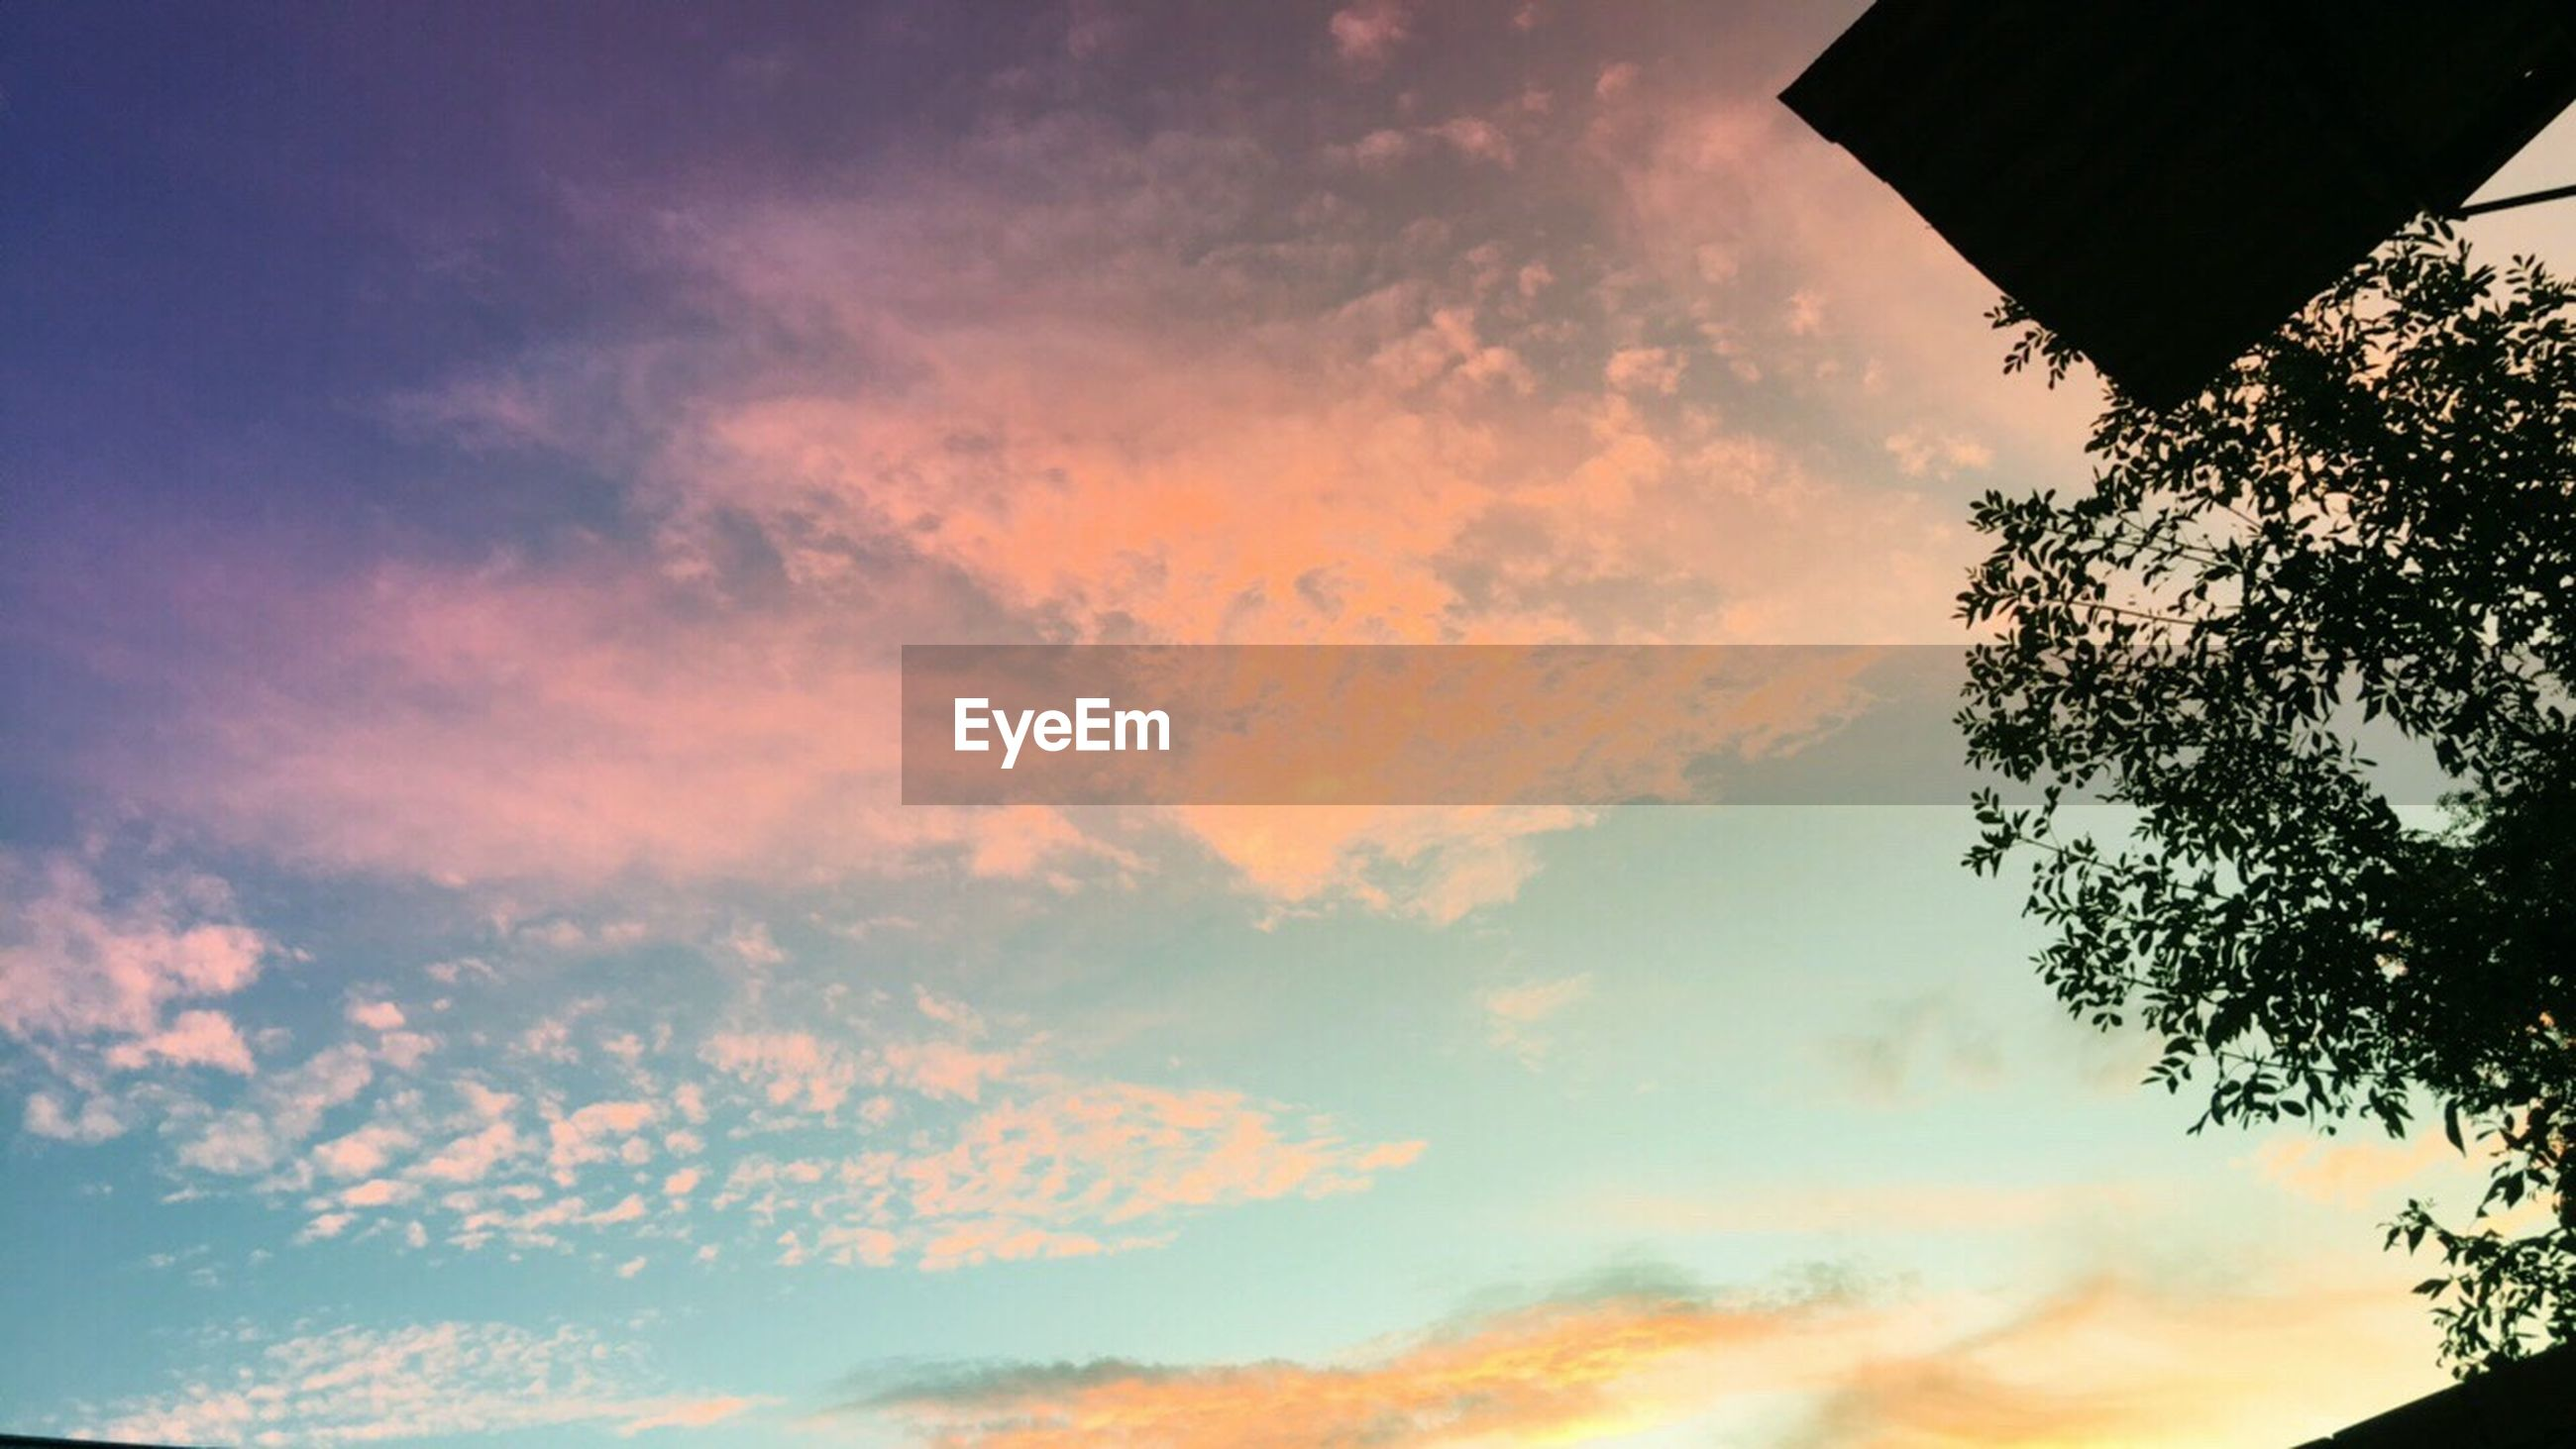 sky, cloud - sky, nature, sunset, low angle view, beauty in nature, tranquility, tree, scenics, no people, outdoors, tranquil scene, day